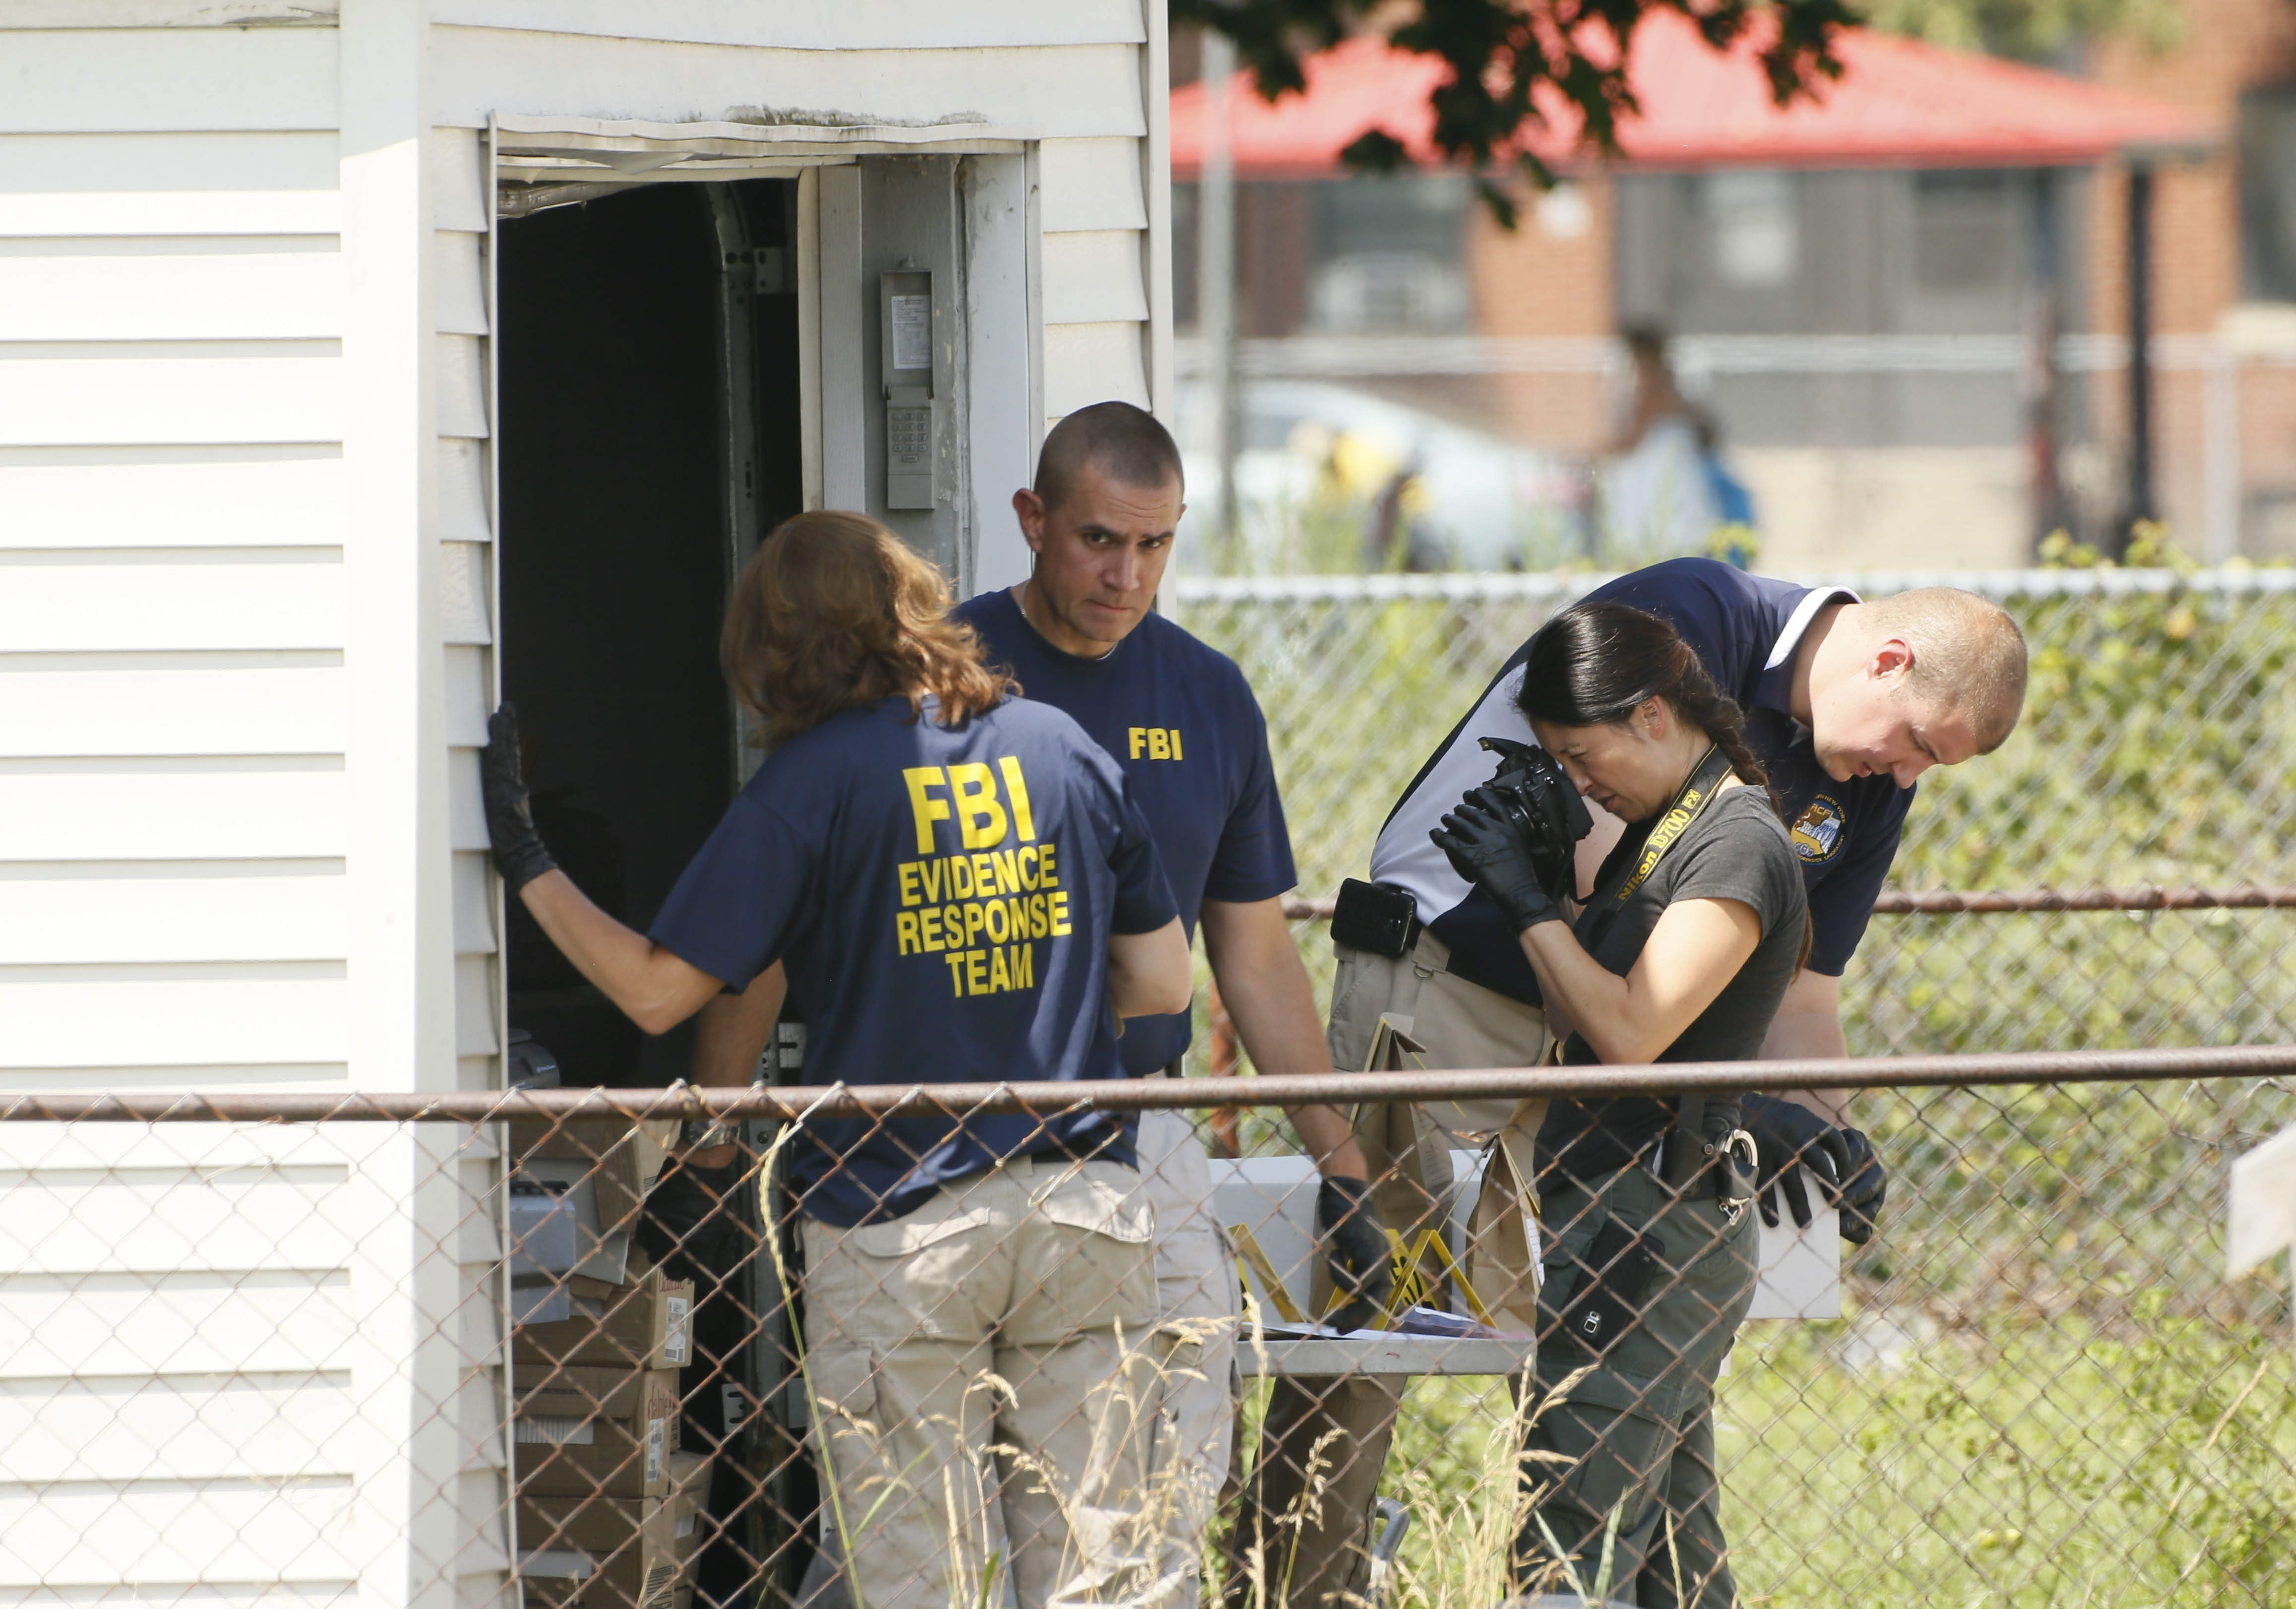 Members of the FBI's Evidence Response Team collect materials from the garage at the Lackawanna house of Arafat M. Nagi, 44, after a federal anti-terrorism task force arrested him as an alleged ISIS sympathizer.